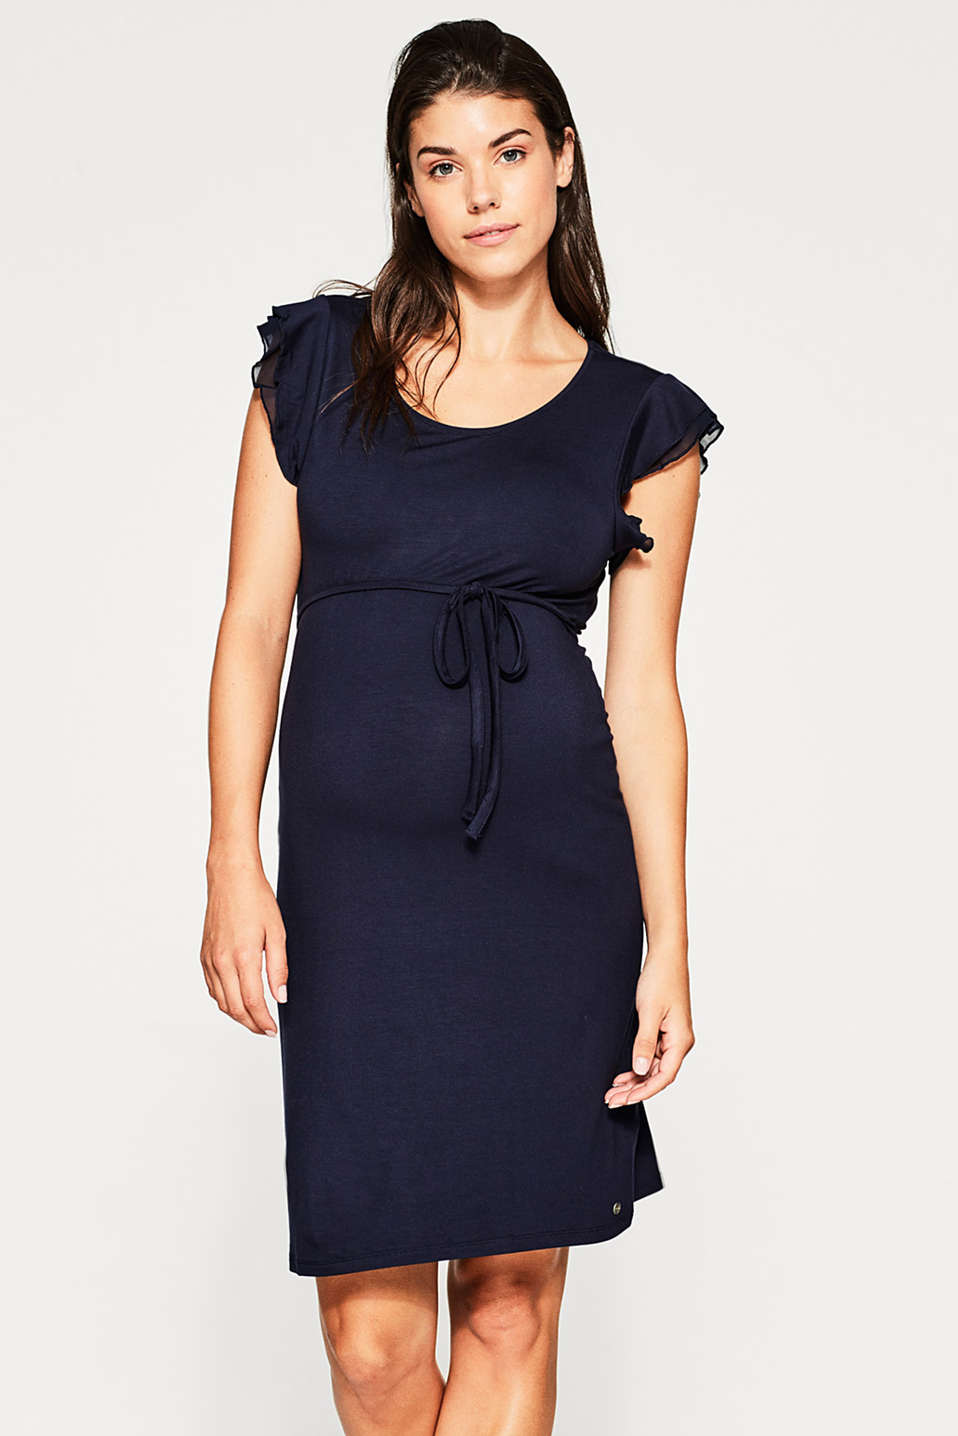 Esprit - Stretch jersey dress with frilled sleeves